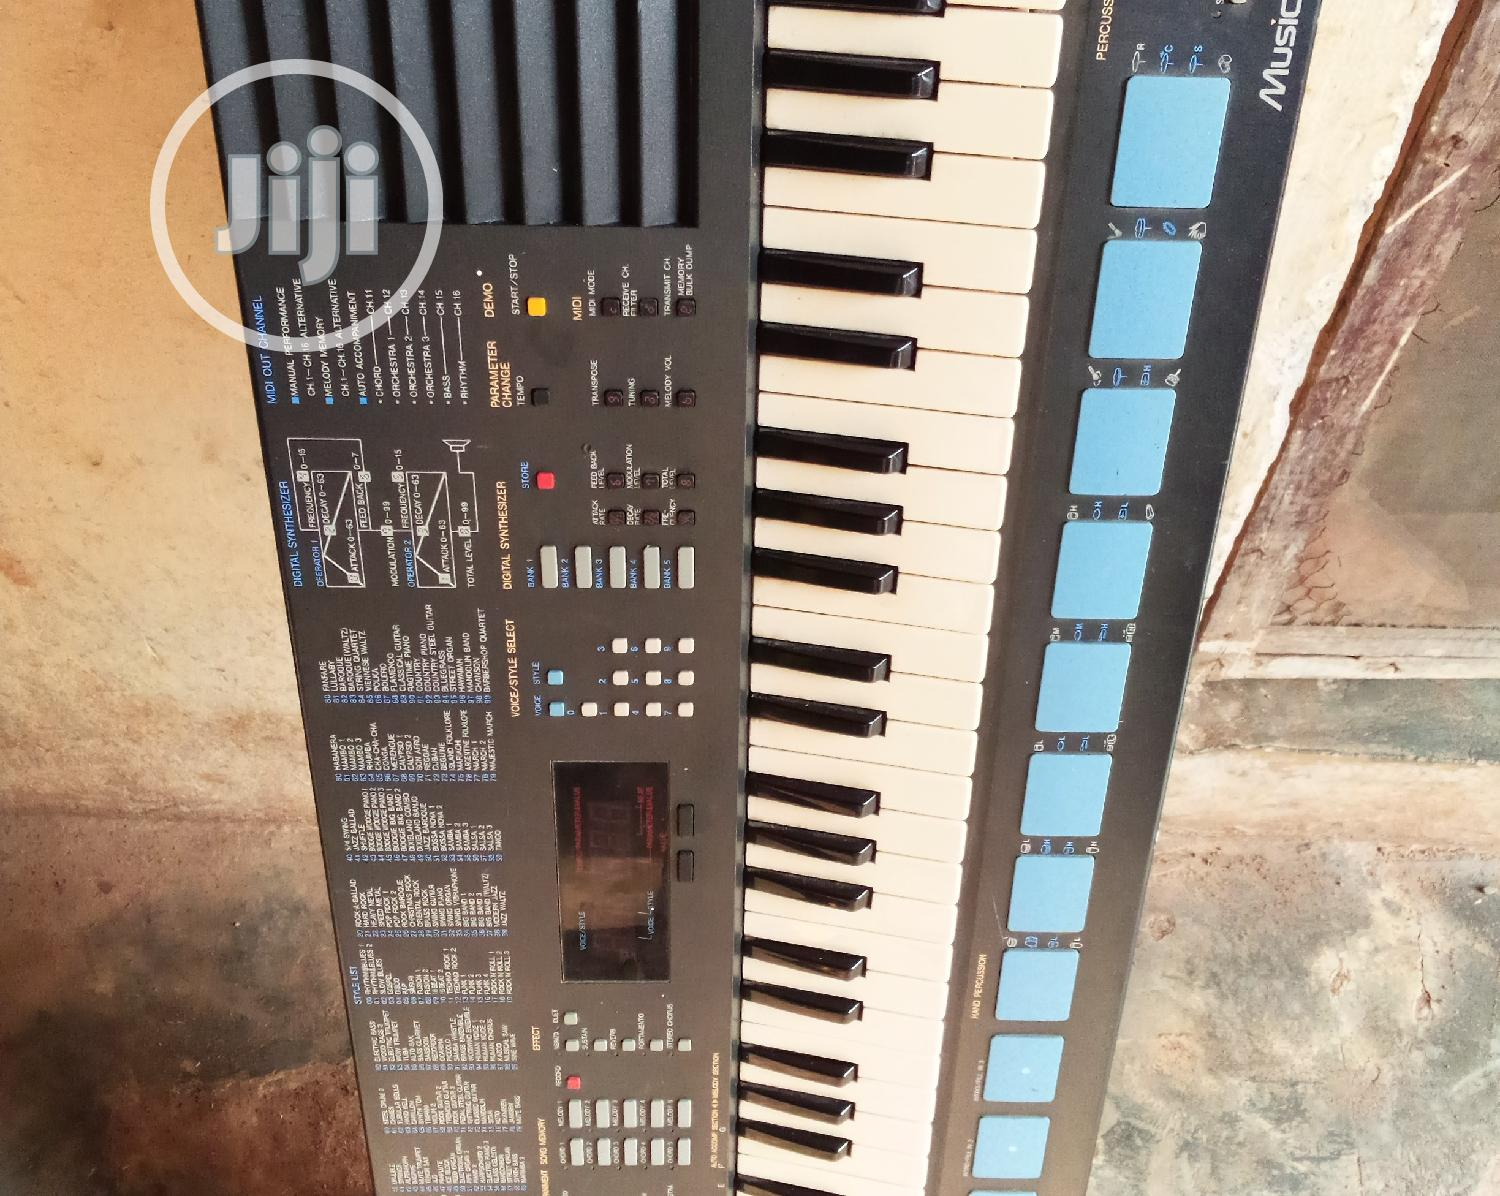 London Use Yamaha PSS 680 | Musical Instruments & Gear for sale in Alimosho, Lagos State, Nigeria